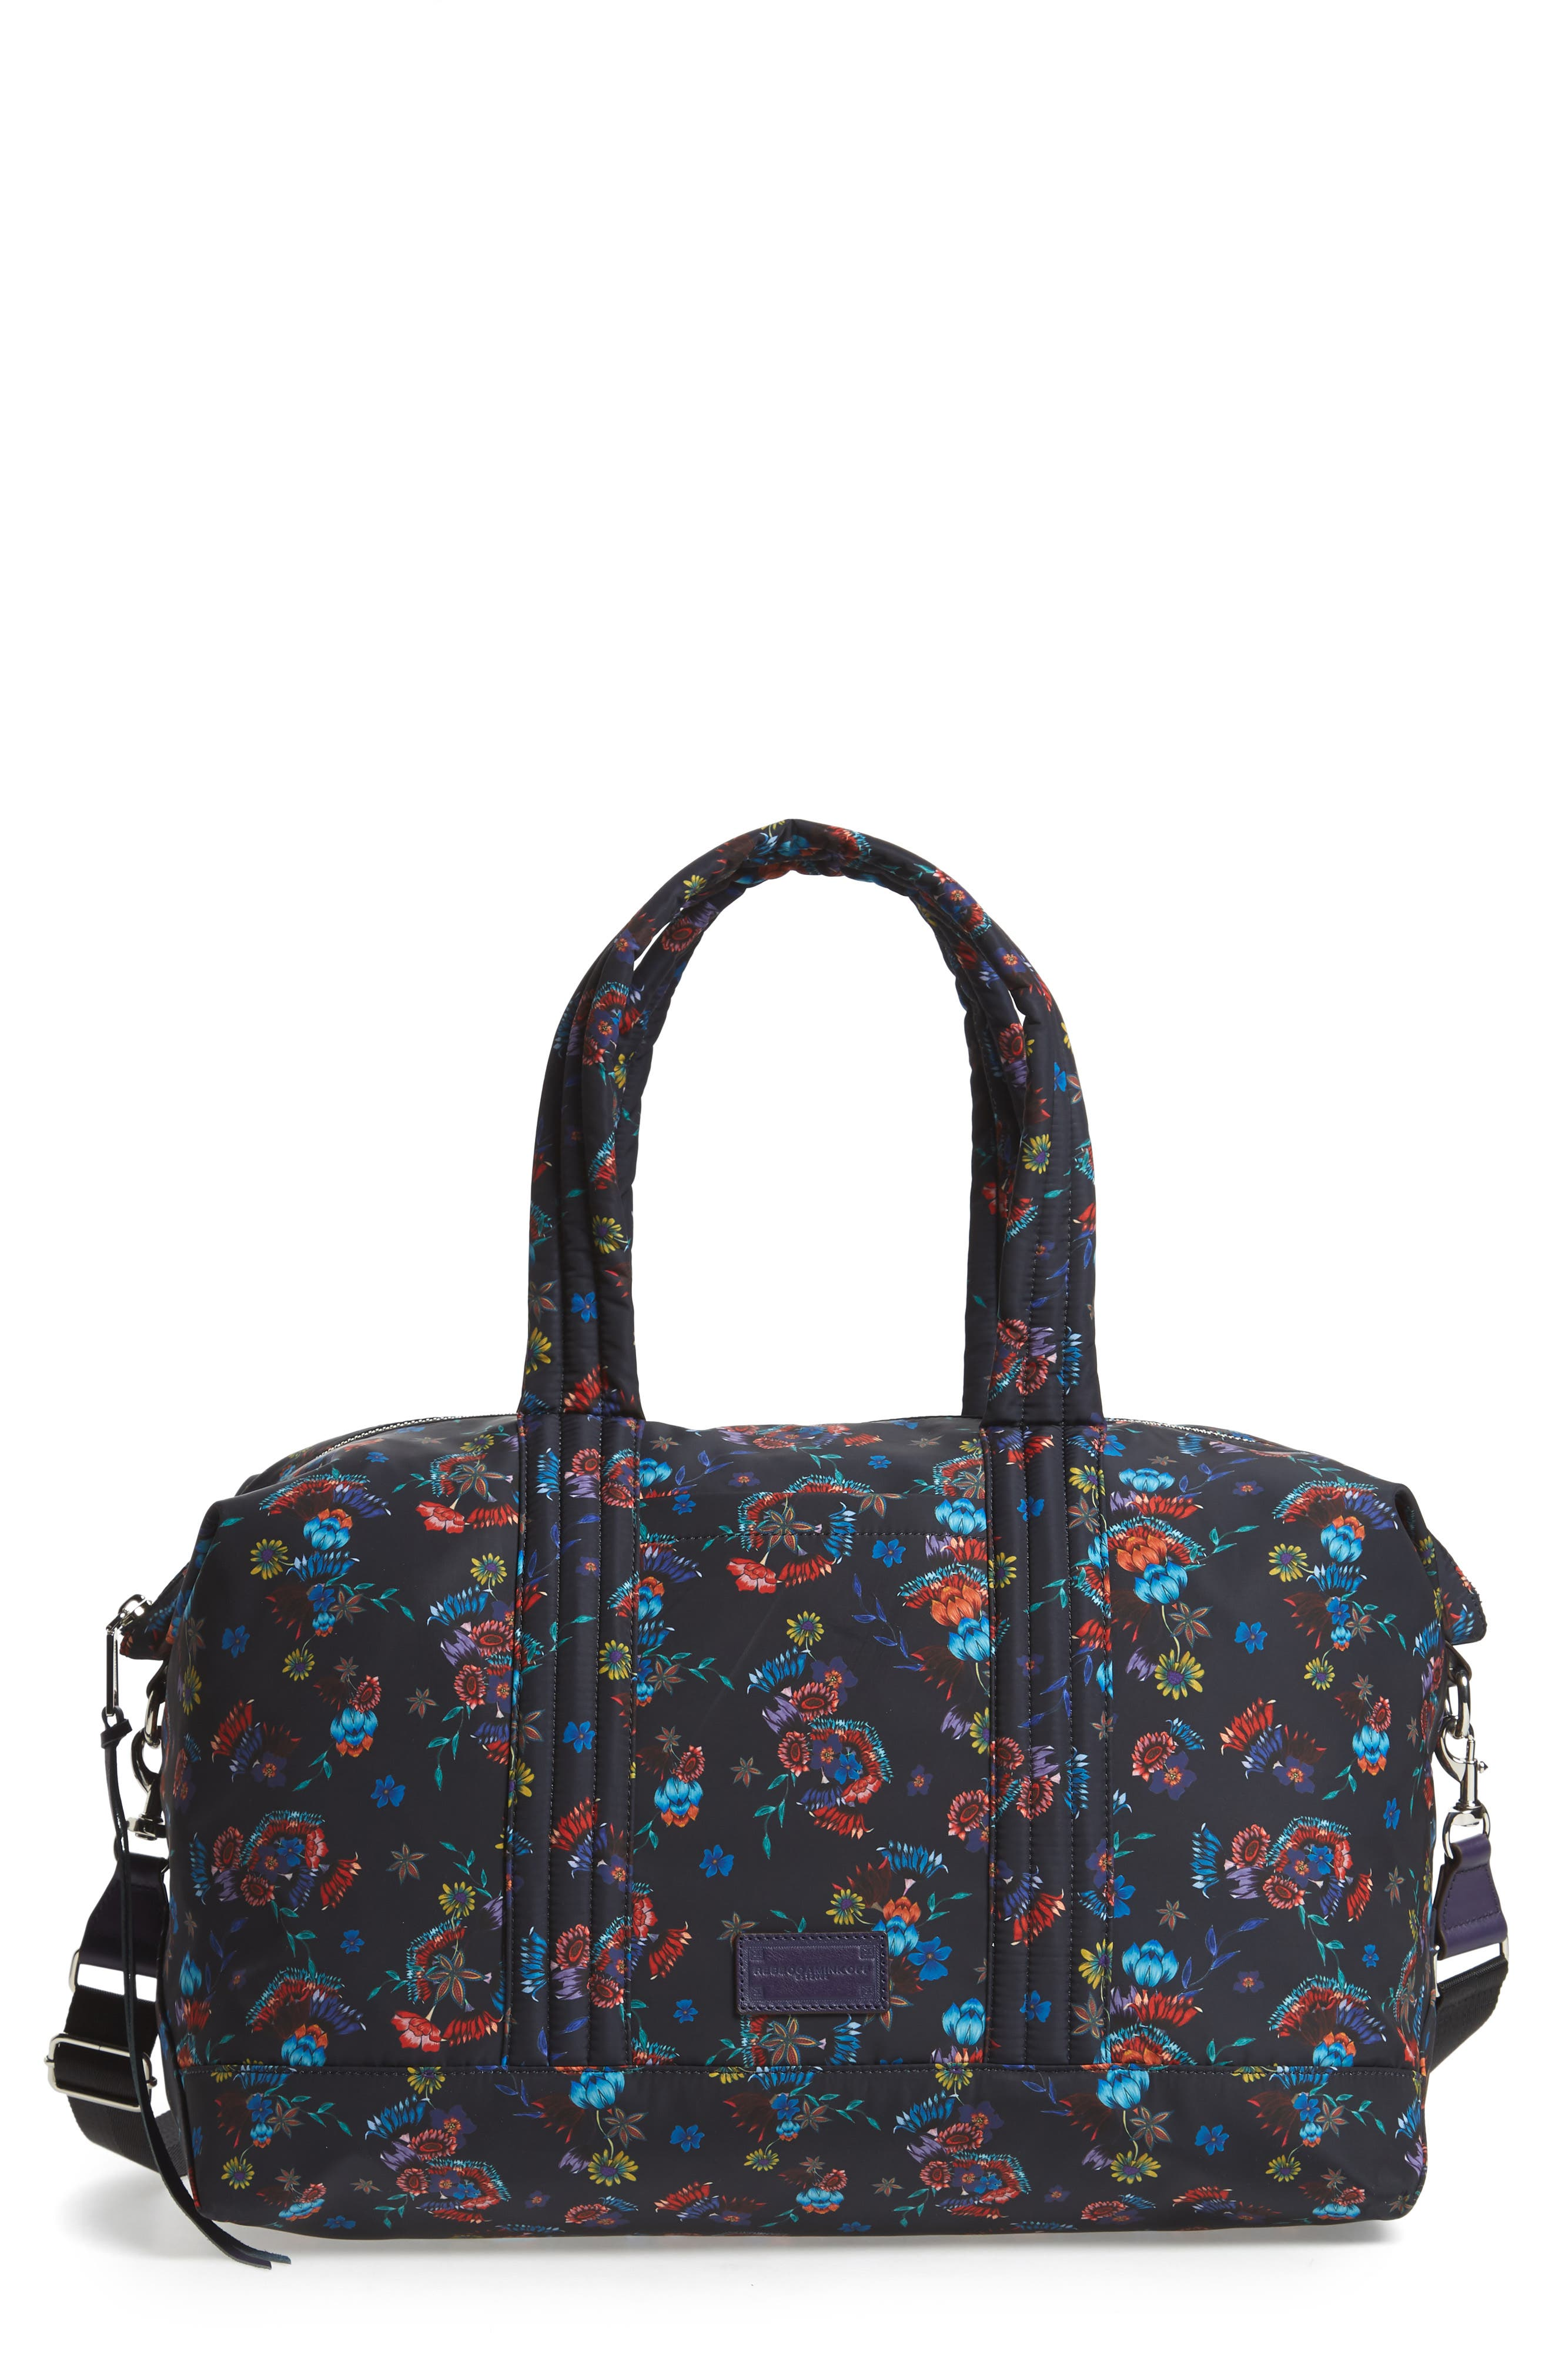 Weekend Nylon Duffel Bag,                         Main,                         color, Floral Blue